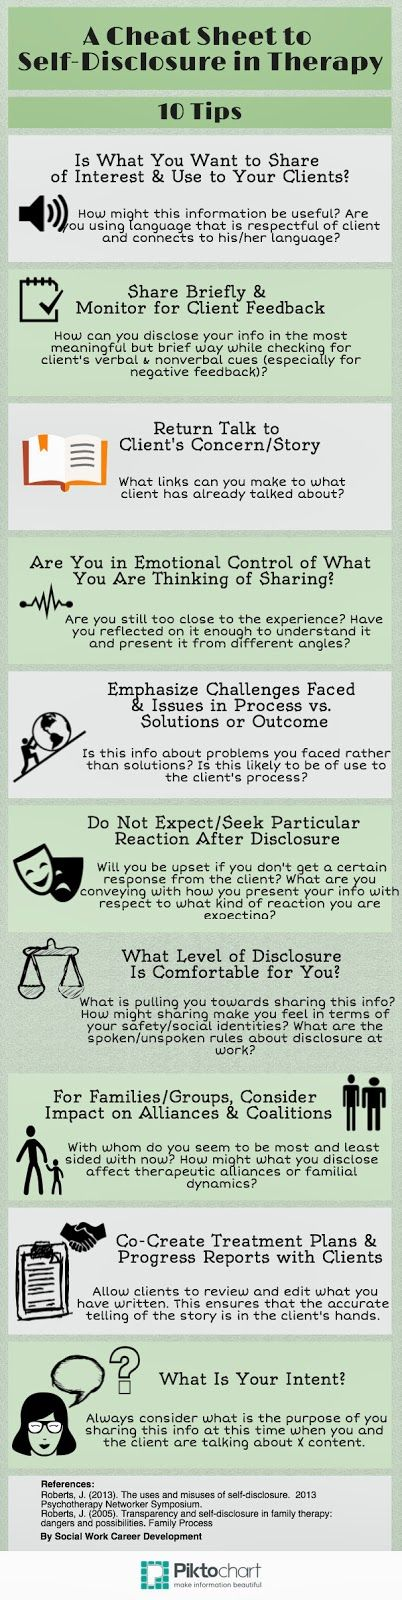 """Social Work Career Development: The Art of Self-Disclosure in Therapy - To help you navigate the tricky waves of communication, this post will be providing you with some of the key take-aways from Janine Roberts, Ed.D.'s talk about """"Therapist Self-Disclosure"""" at the Psychotherapy Symposium 2013. Below is an infographic that summarizes Roberts' key guidelines about self-disclosure for mental health professionals."""